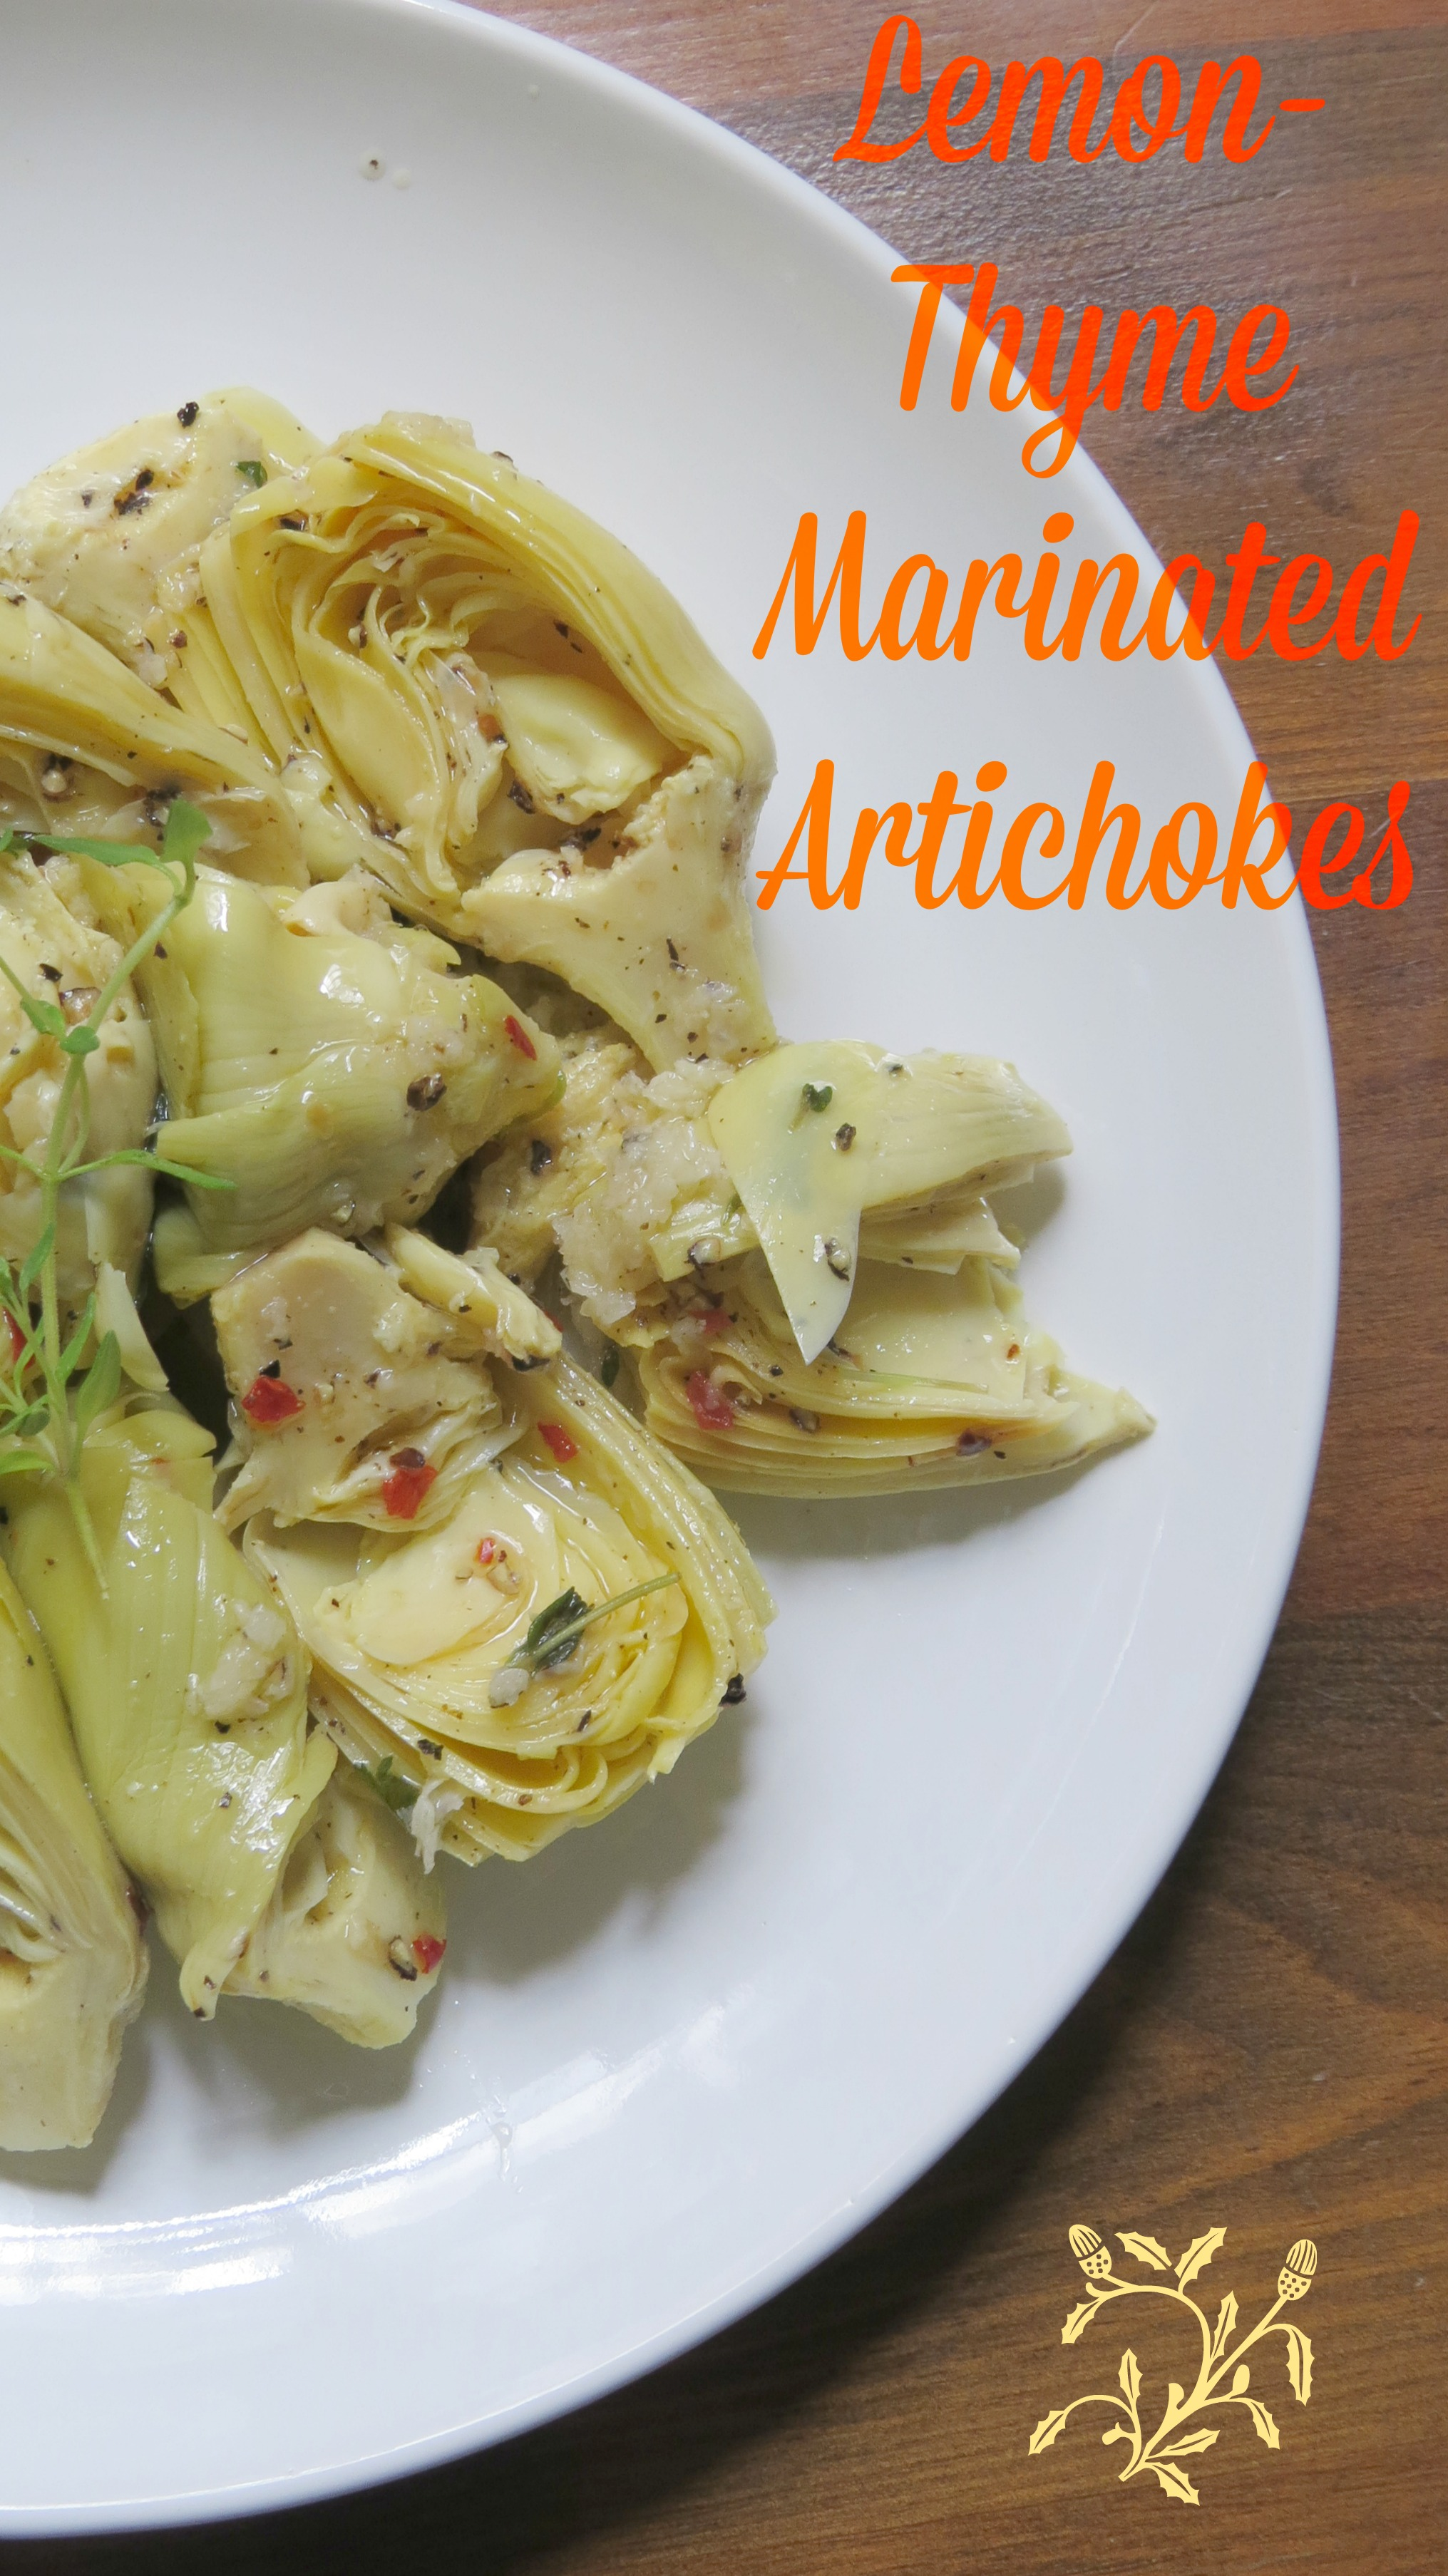 lemon-thyme marinated artichokes